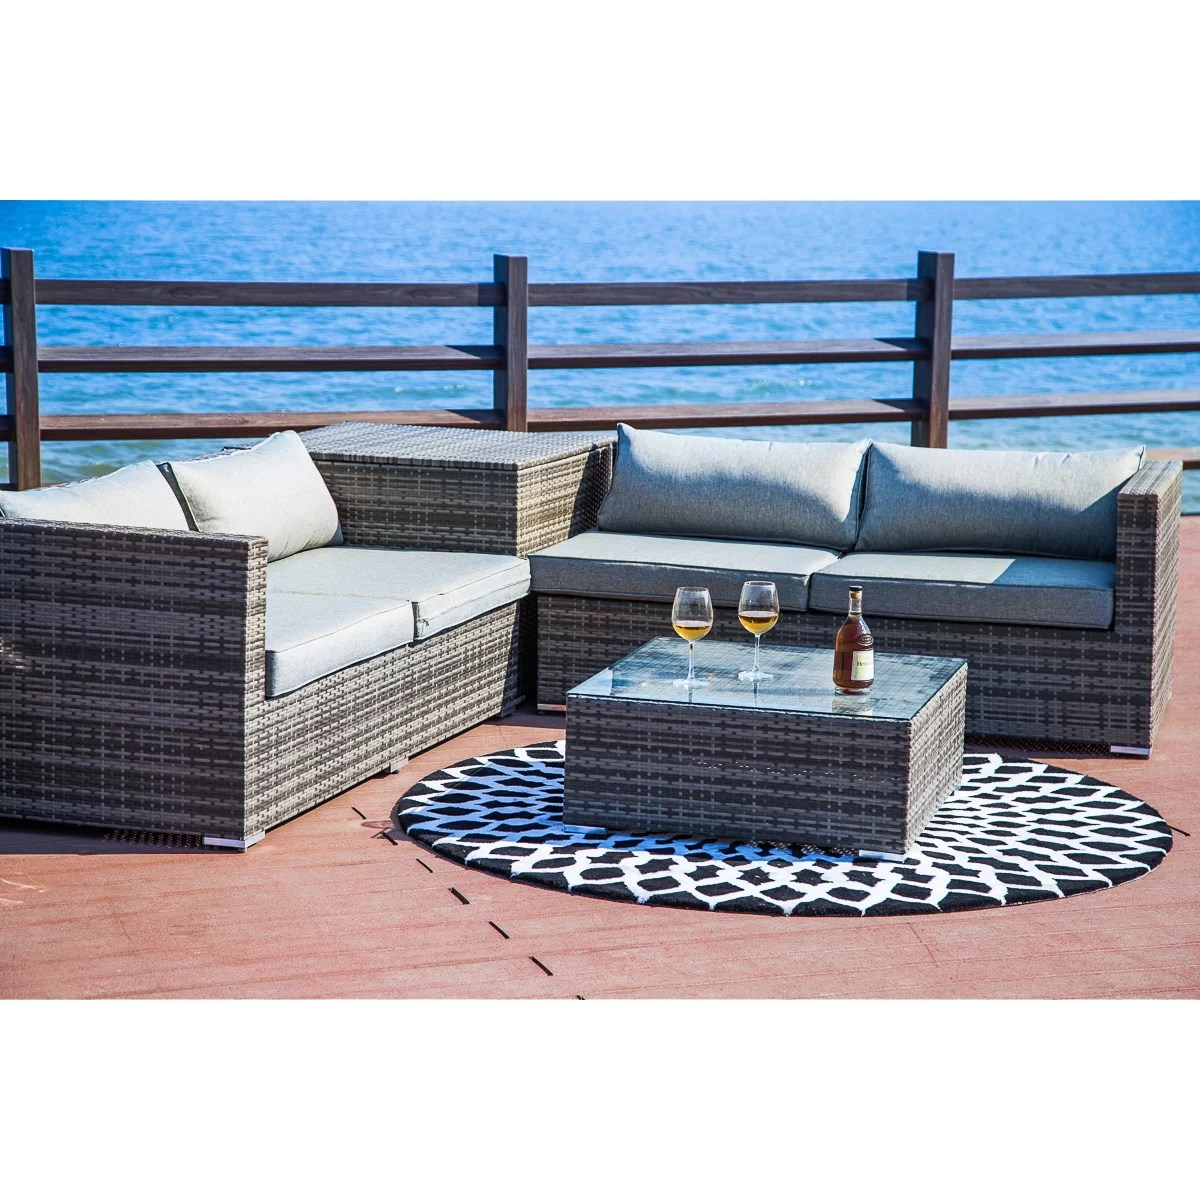 Baptist 6 Piece Rattan Sofa Set With Cushions Brayden Studio Vankirk 4 Piece Sectional Set With Cushions